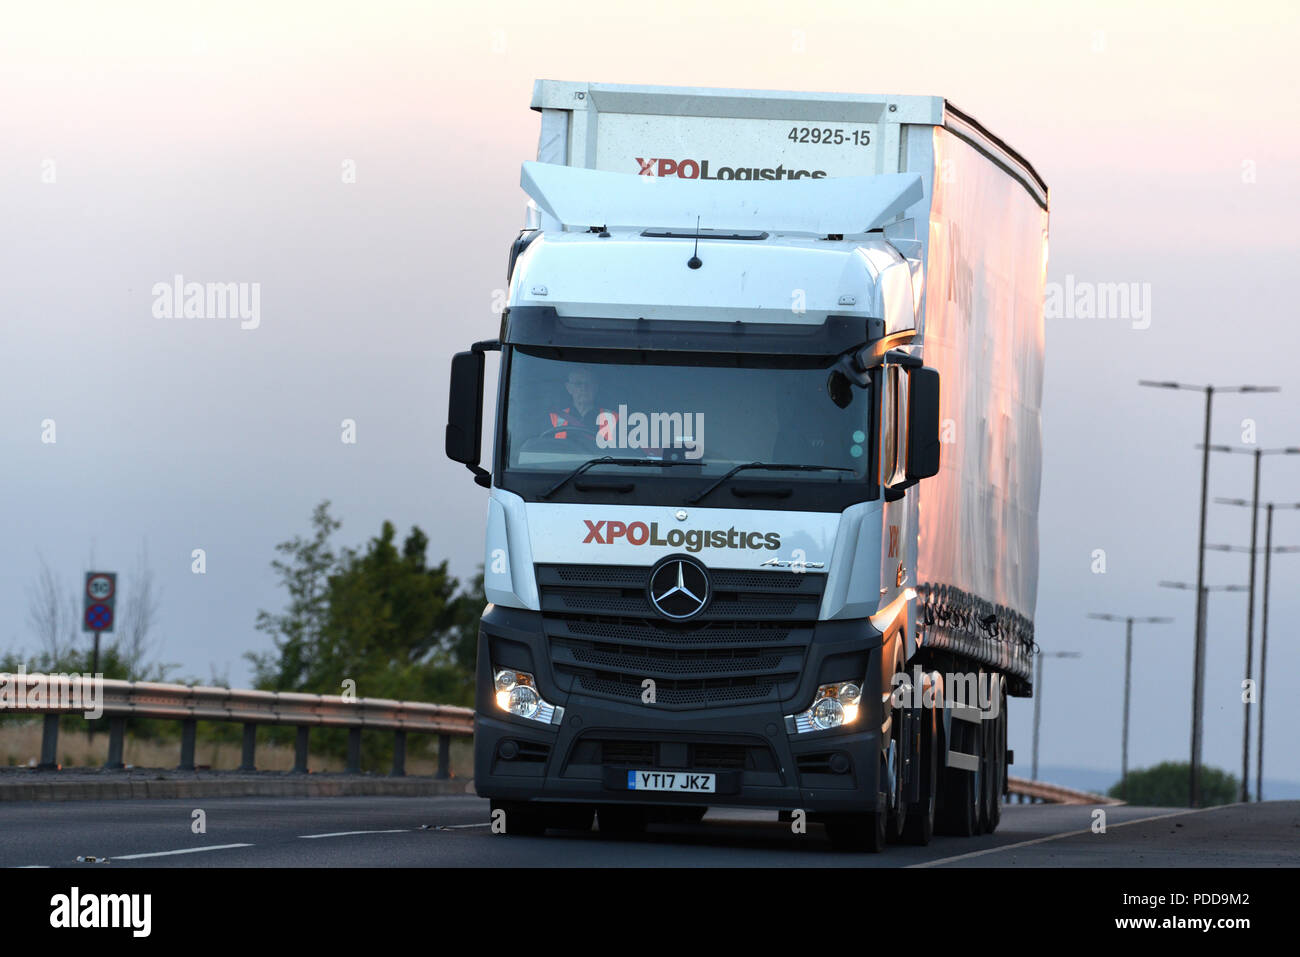 Xpo Logistics Stock Photos & Xpo Logistics Stock Images - Alamy